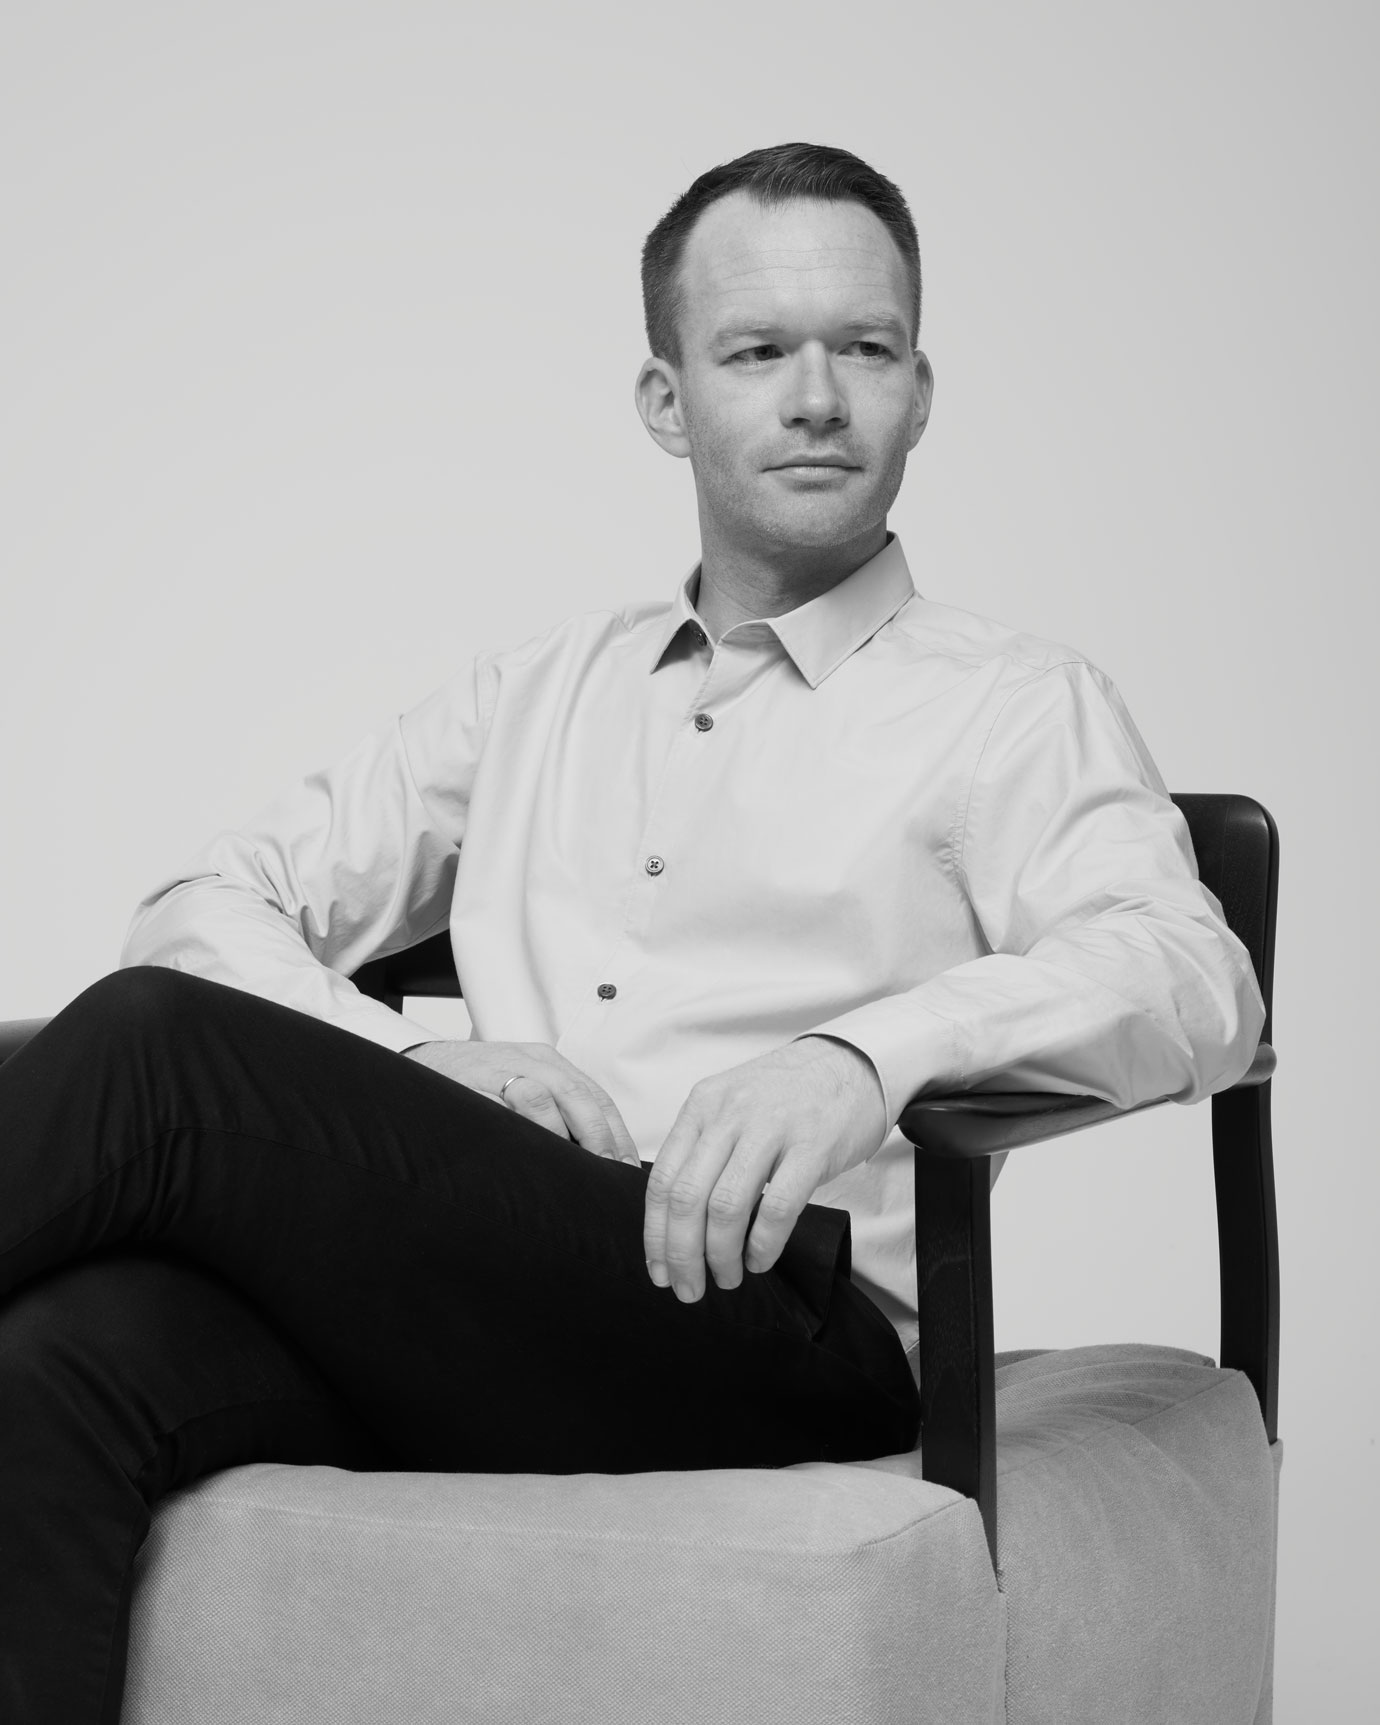 Theory Creative Director Martin Andersson